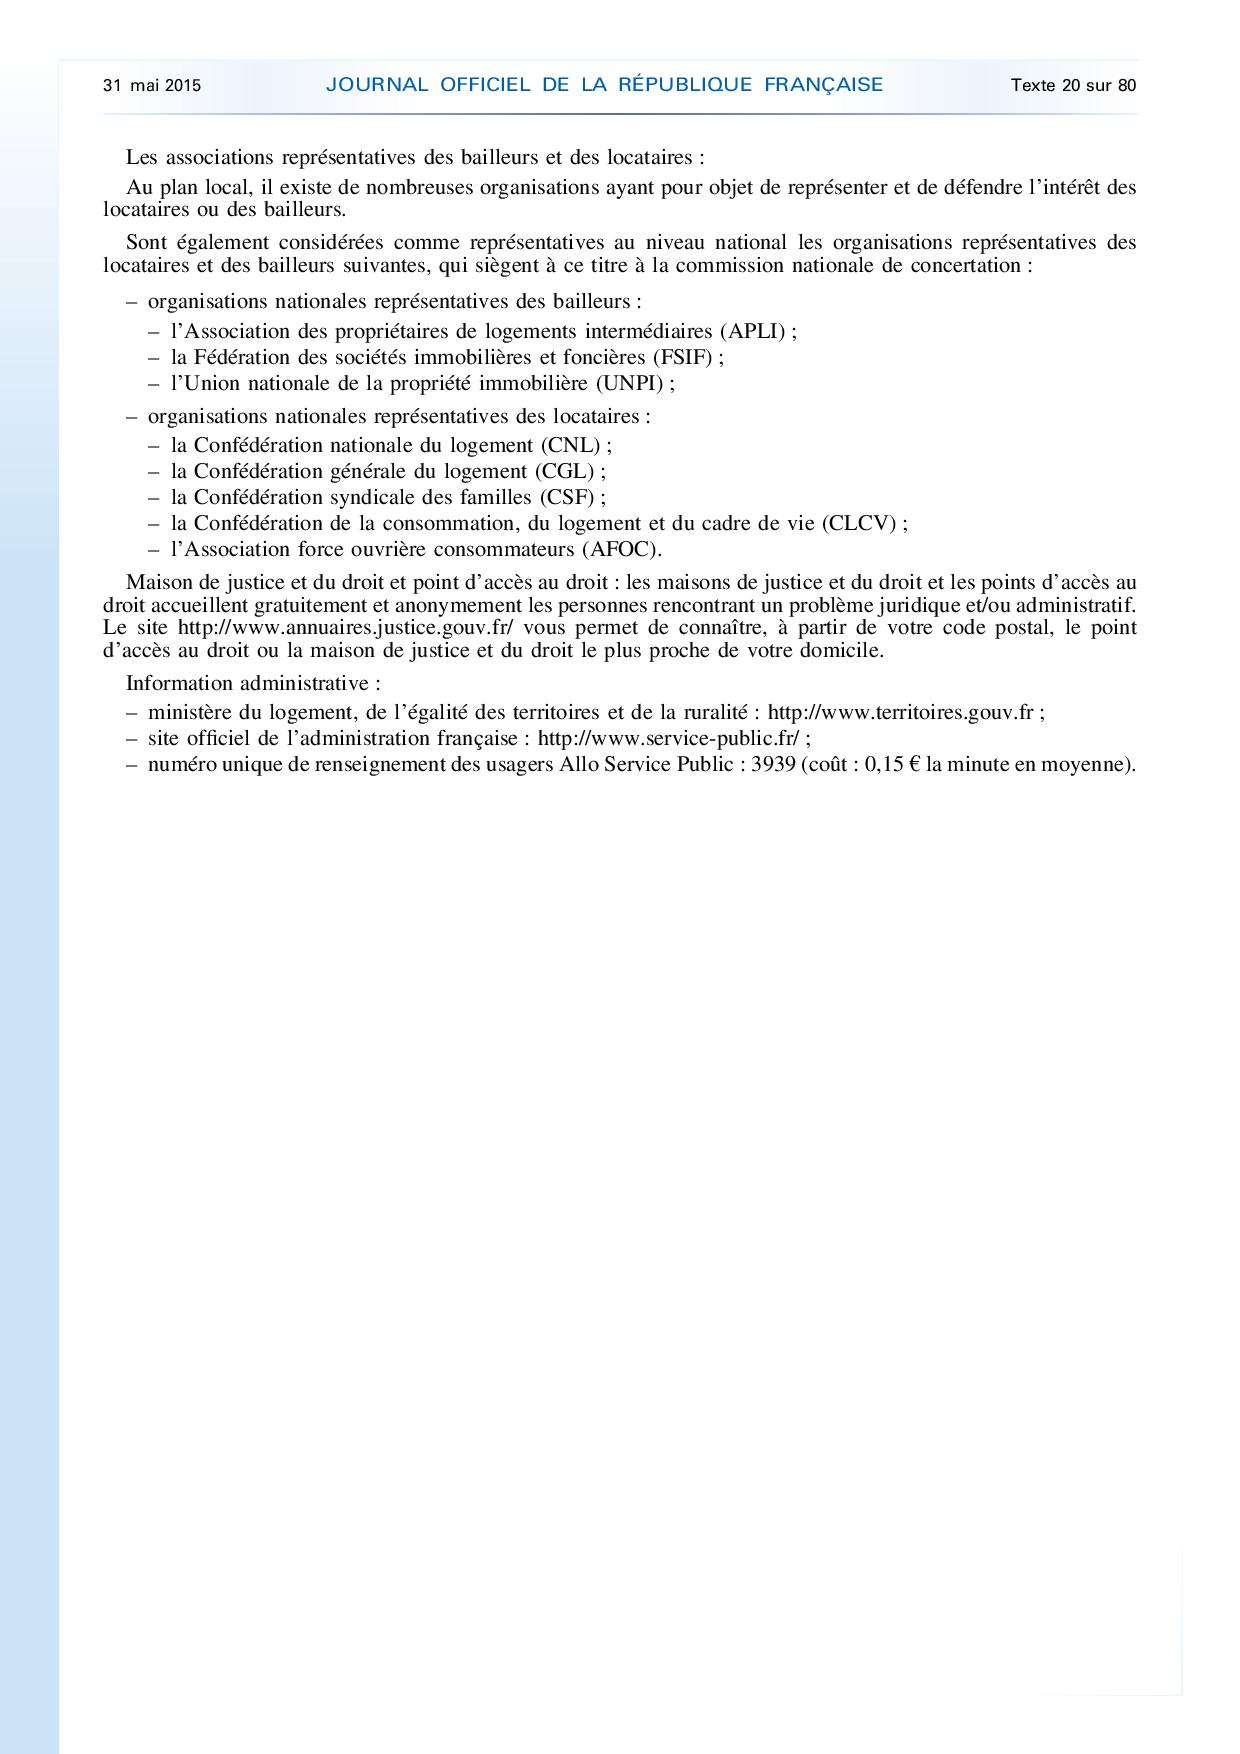 Resume cover letter samples legal assistant resume for Contrat de colocation meublee